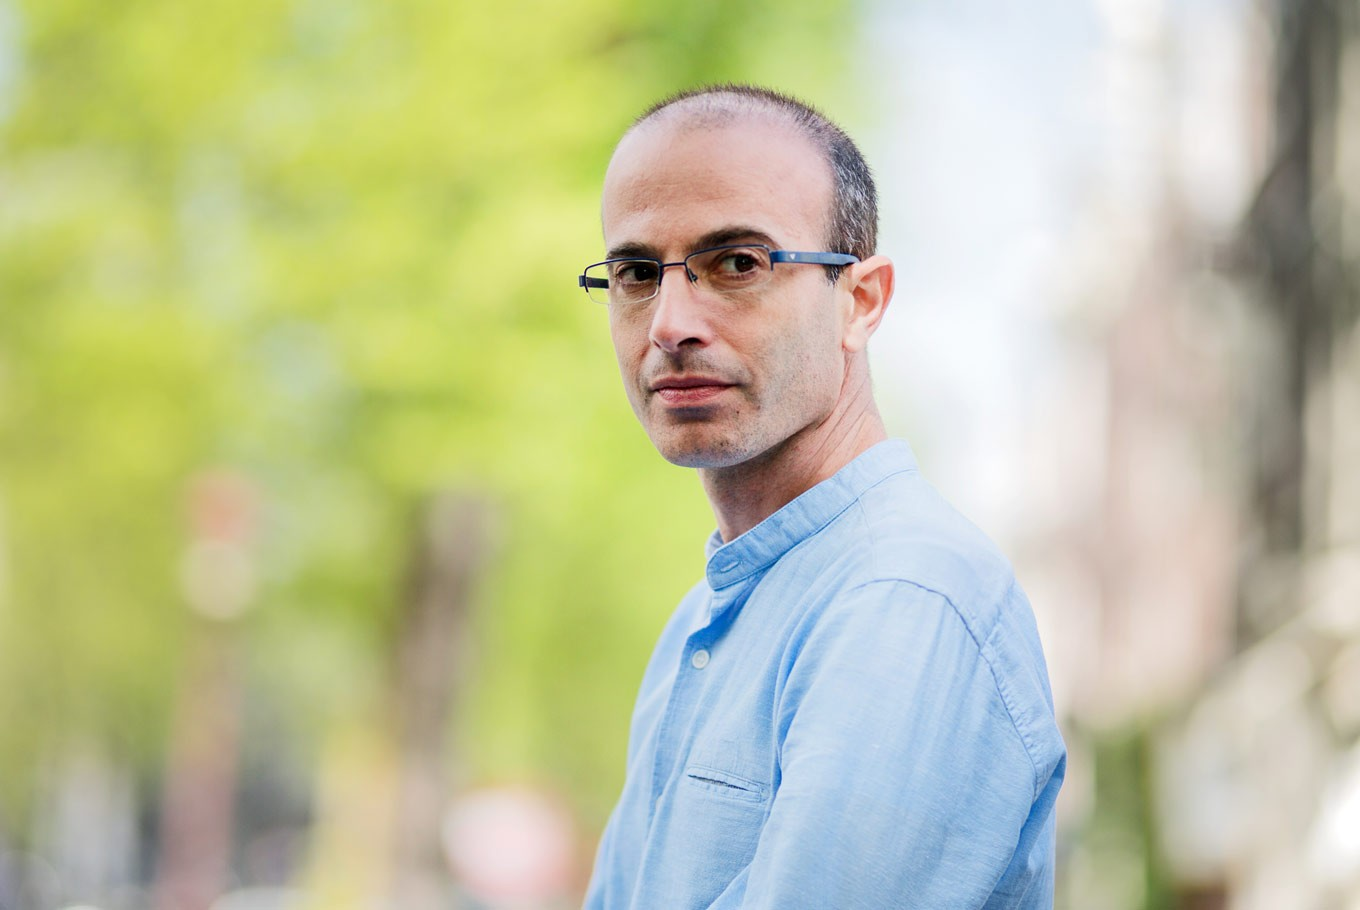 Yuval Noah Harari: '21 Lessons' from data, meditation to AI and 'Black Mirror'